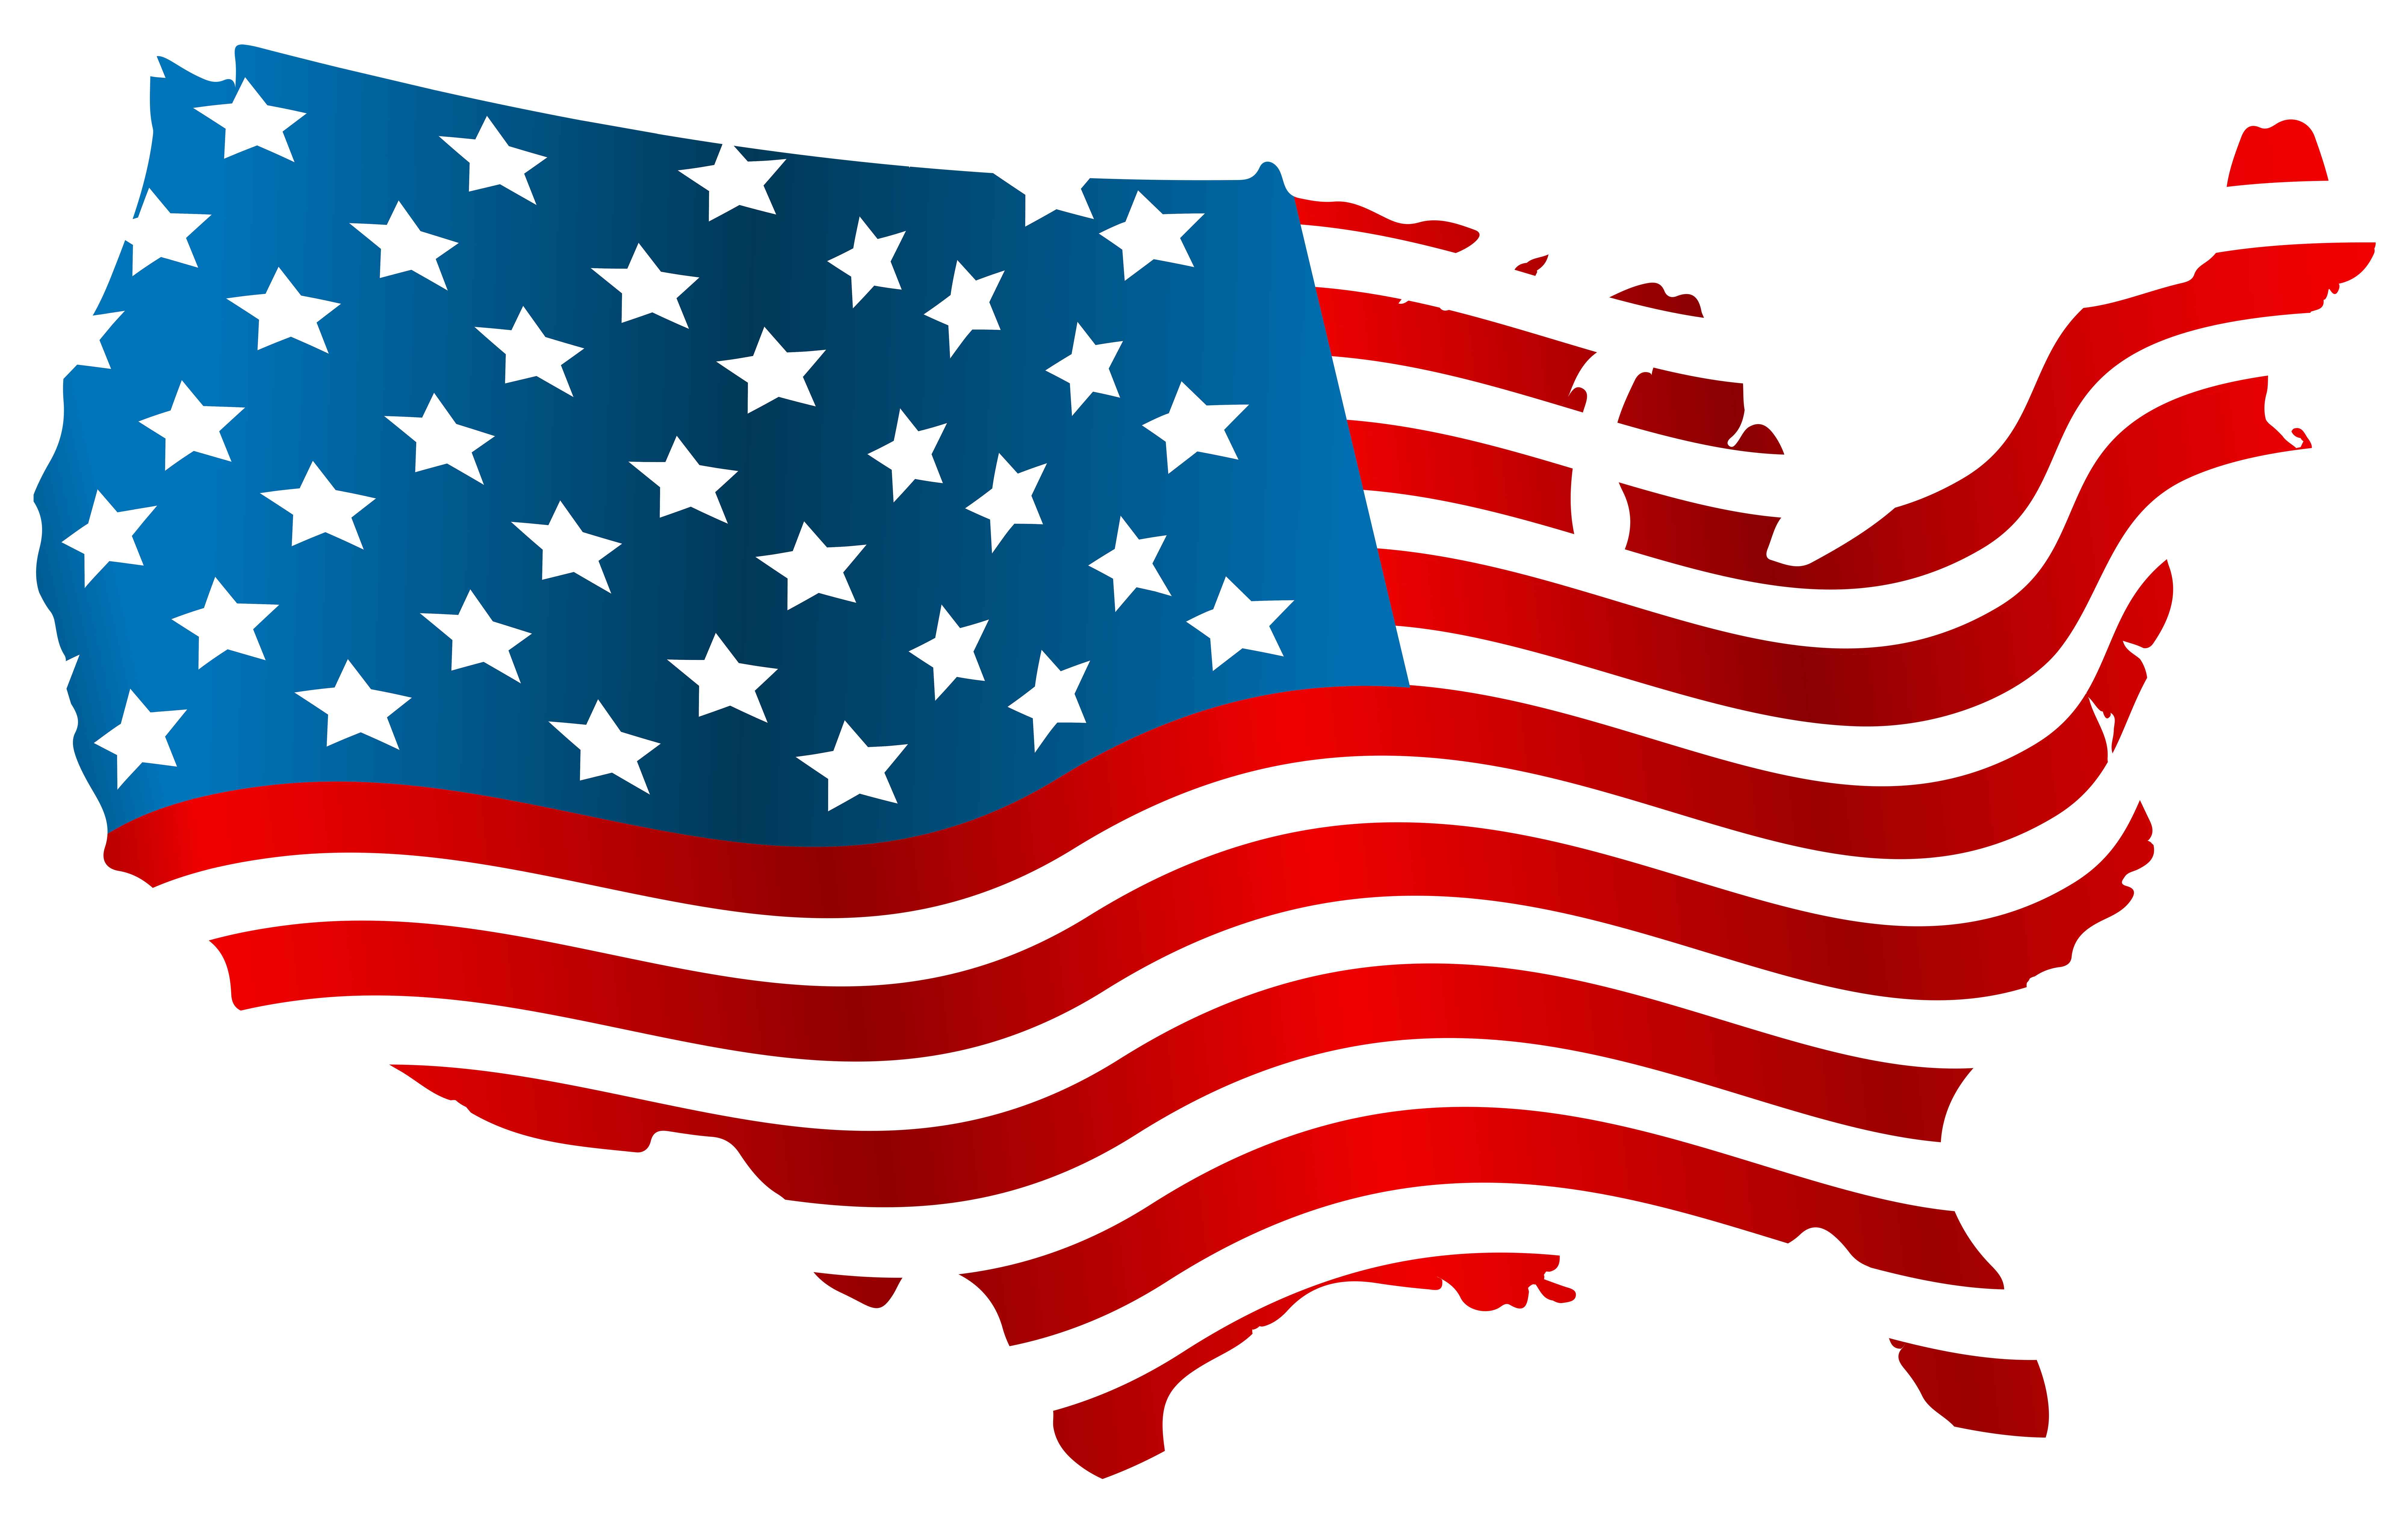 Motorcycle clipart patriotic. Usa flag map png